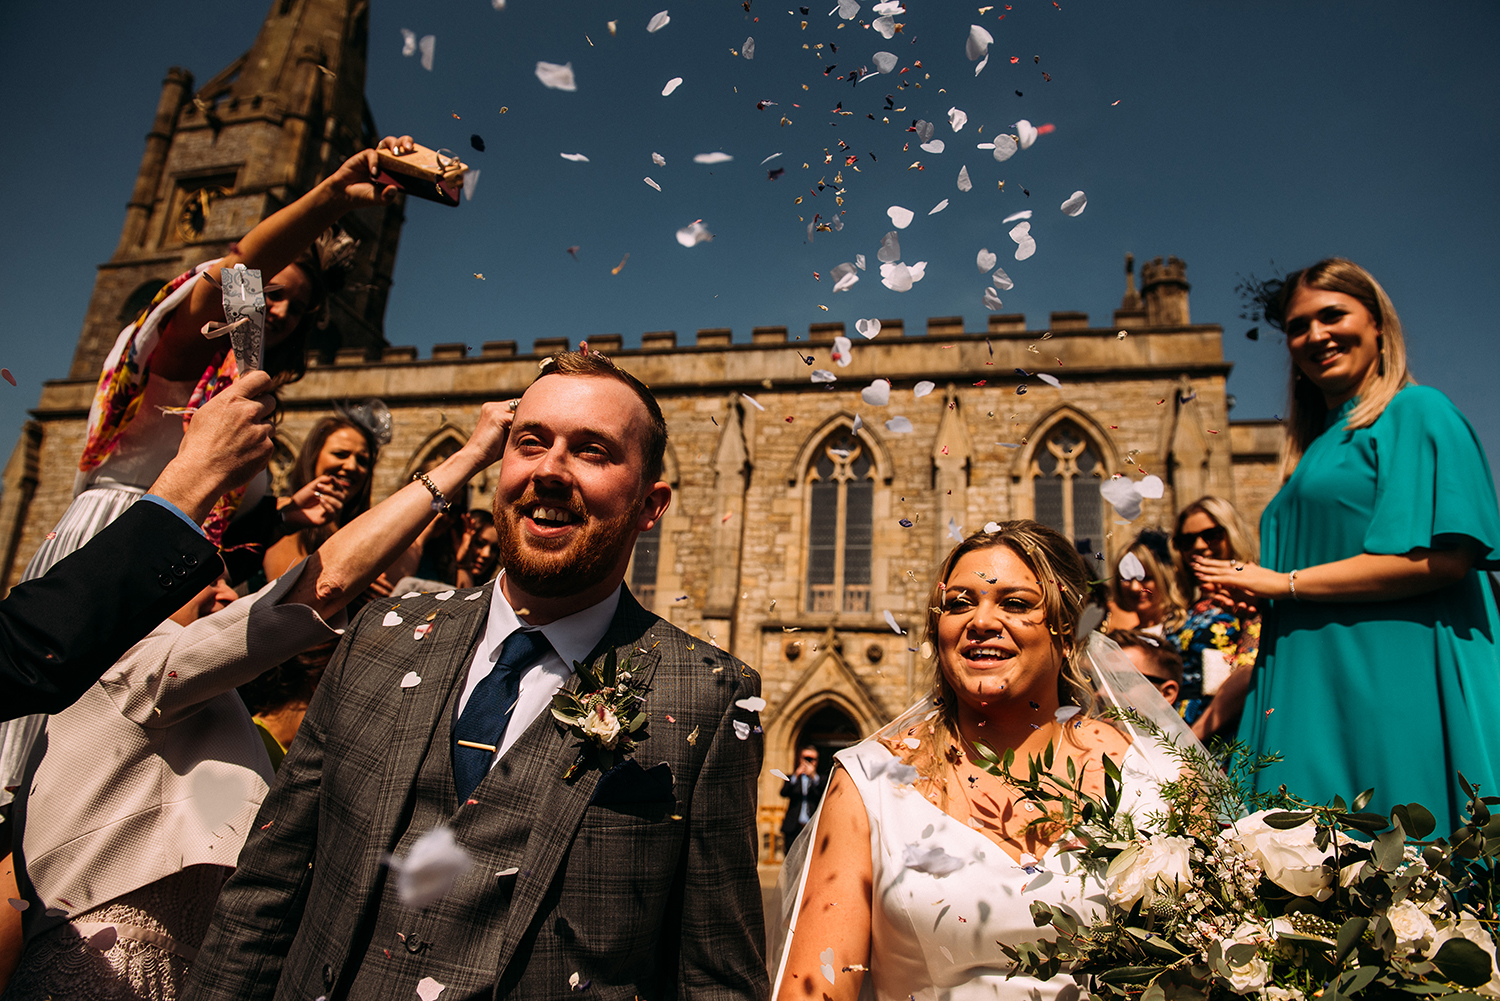 bride and groom walk through confetti outside church